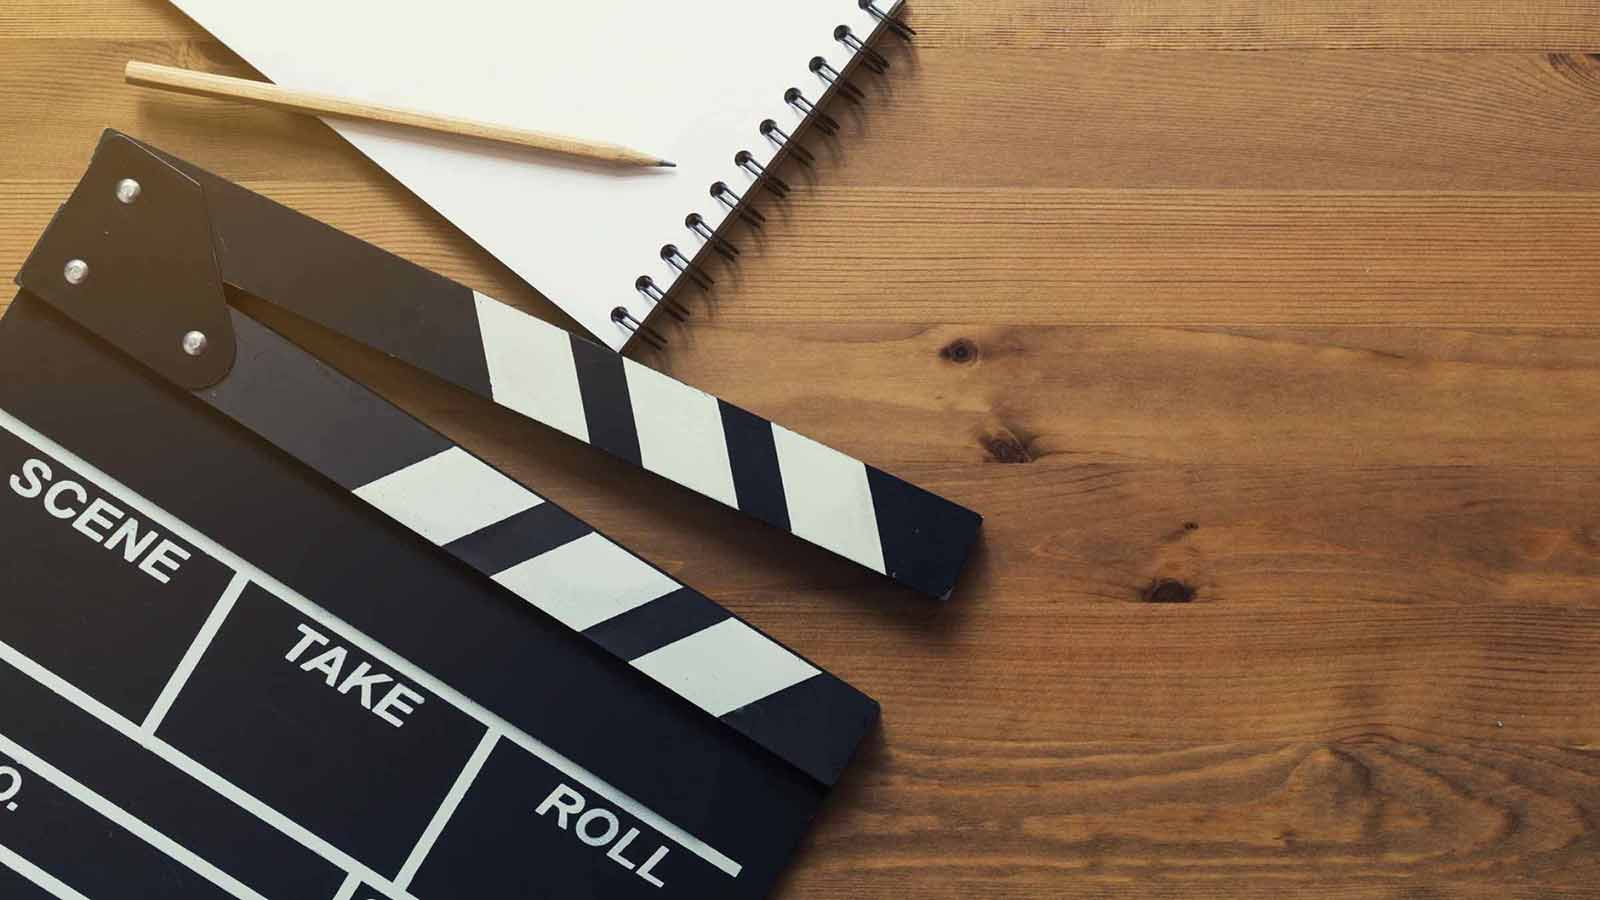 Get the best advice on how to write a proper film analysis essay.